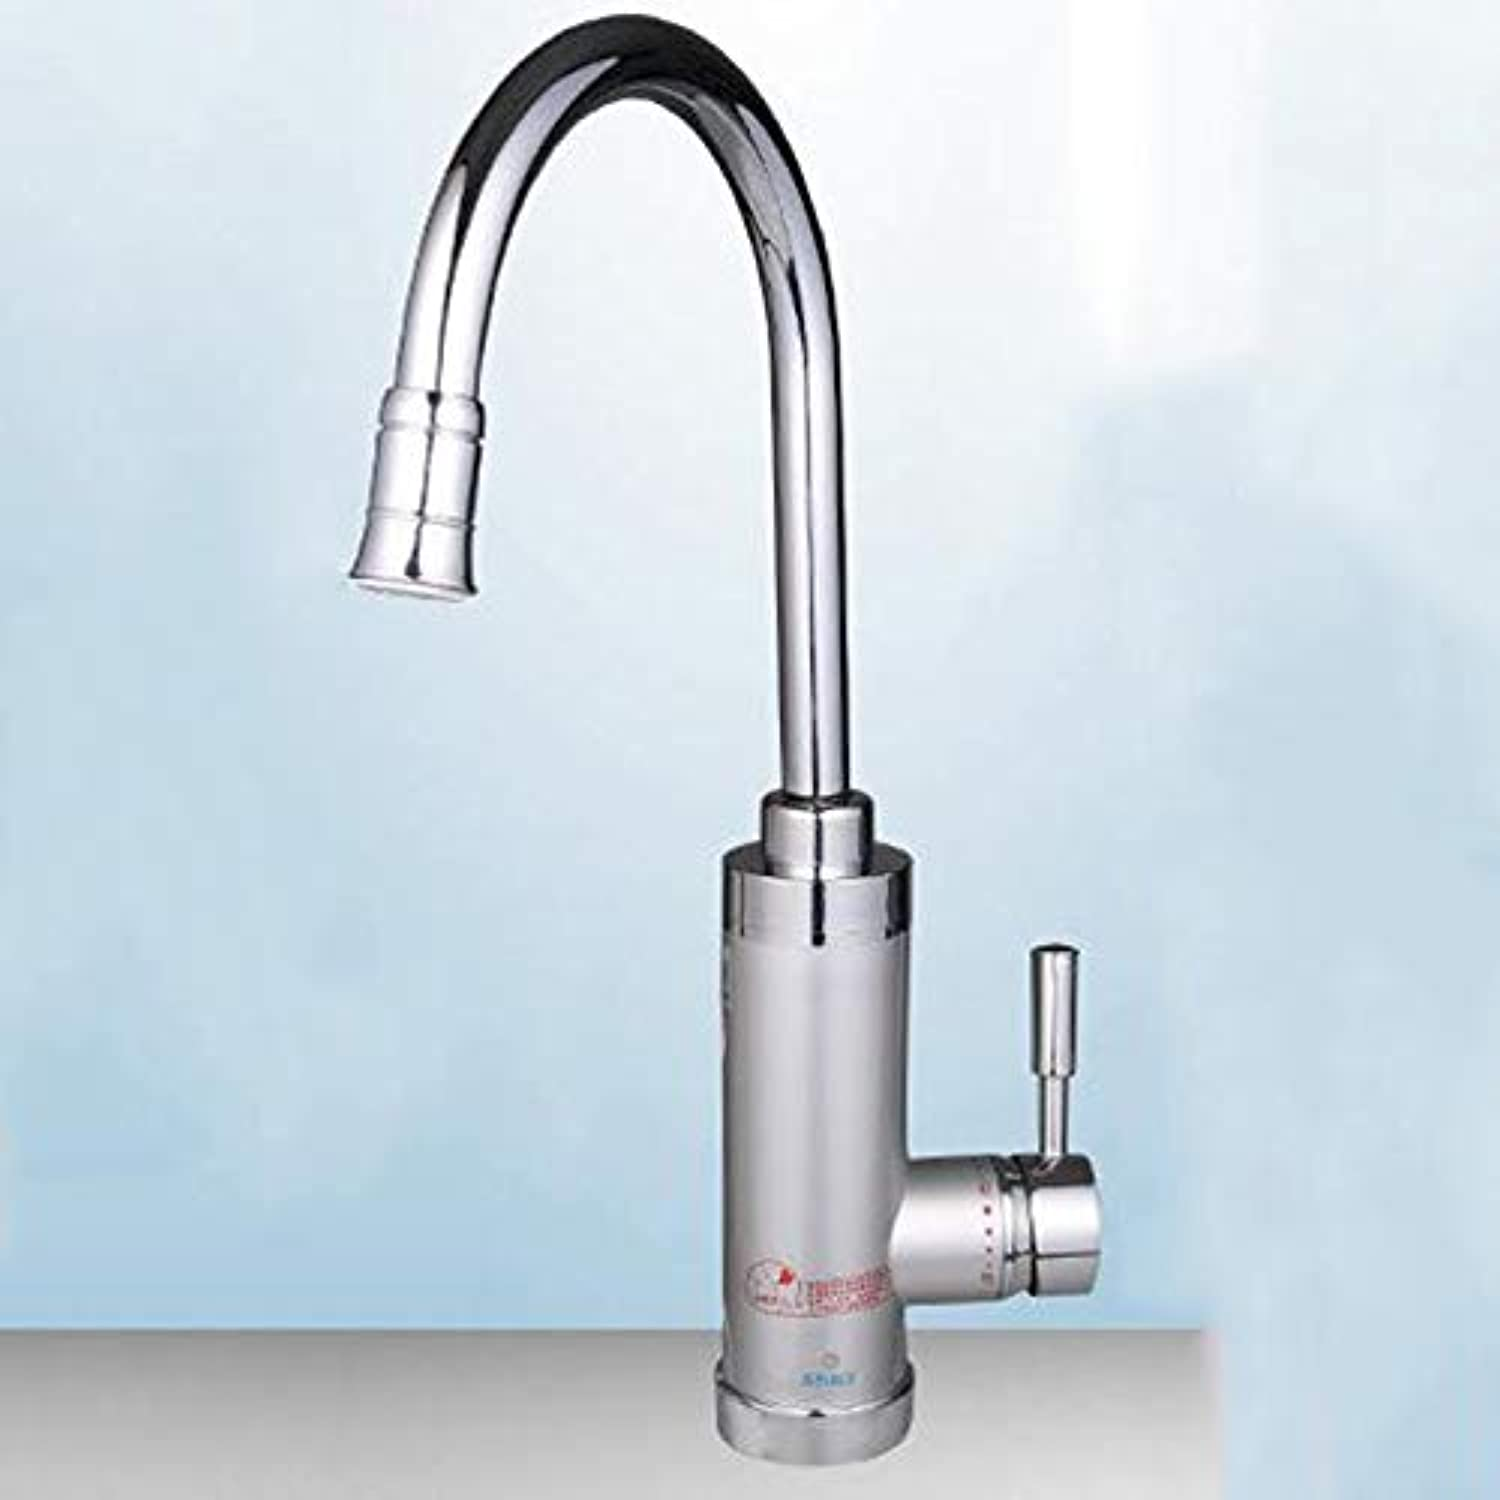 304 Stainless Steel Fast Heating Instant Hot Kitchen Hot And Cold Water Faucet (color   Silver, Size   A)